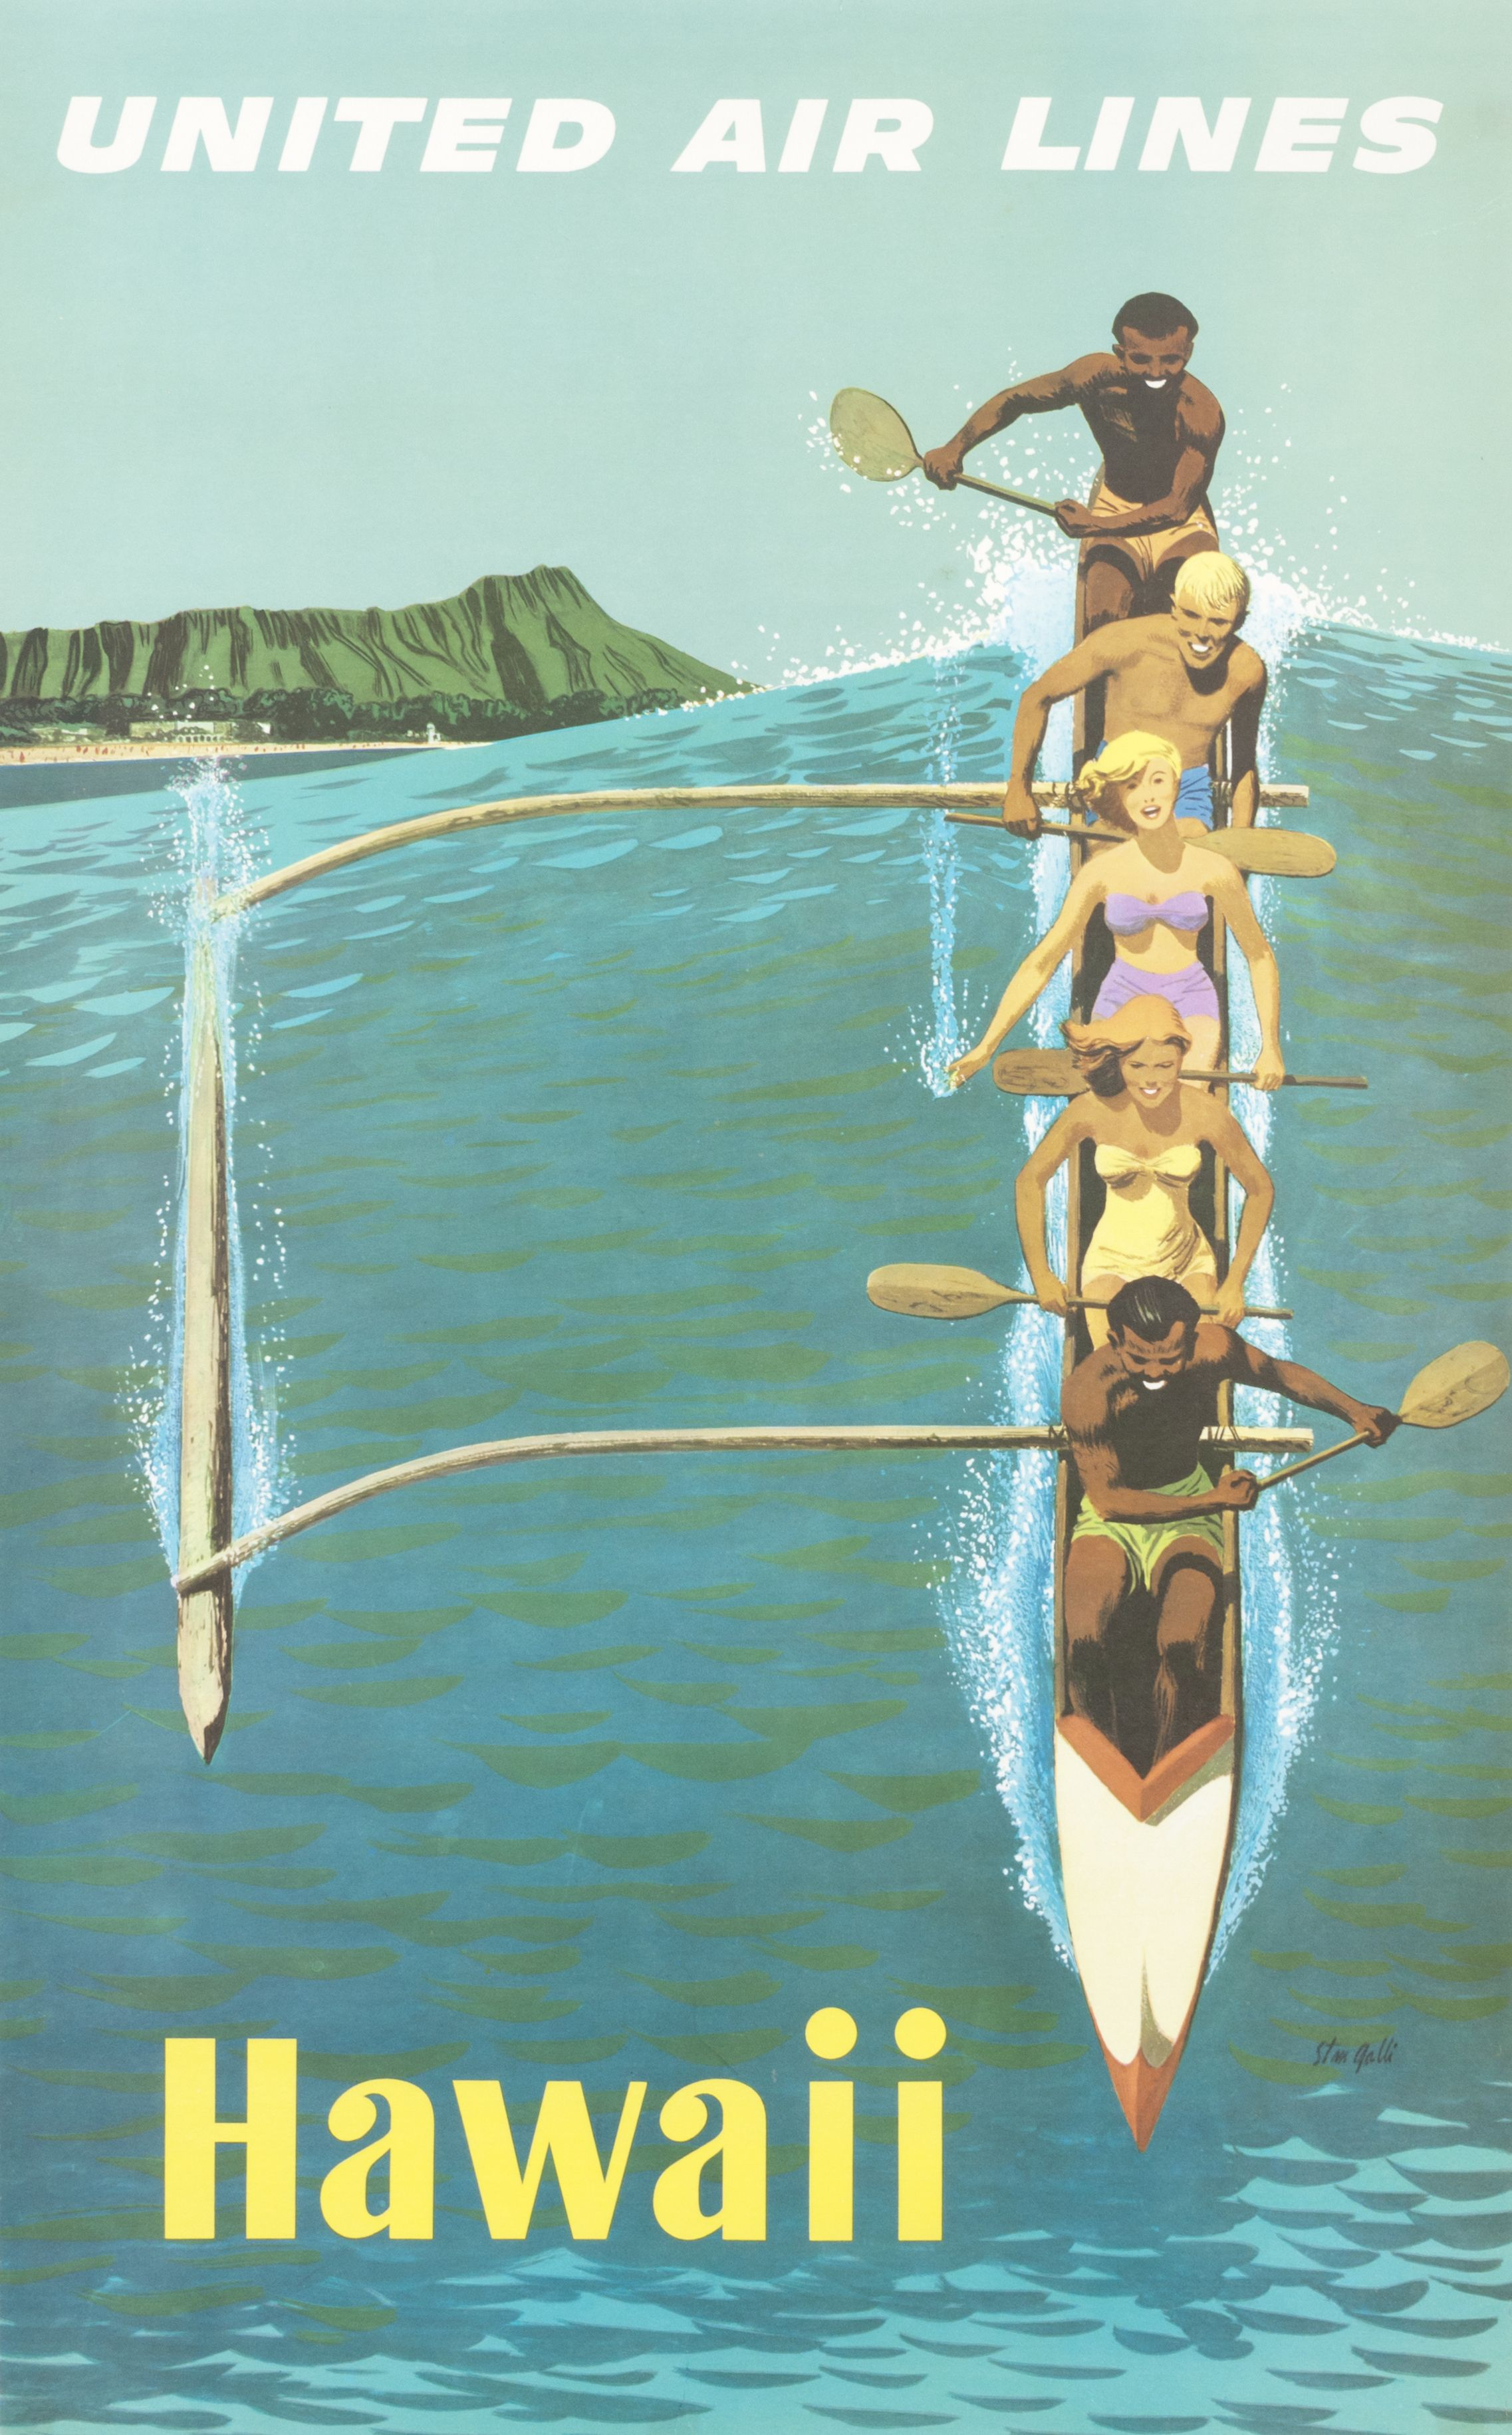 Hawaii - United Air Lines by Stan Galli, 1960 ca. | Summertime ...